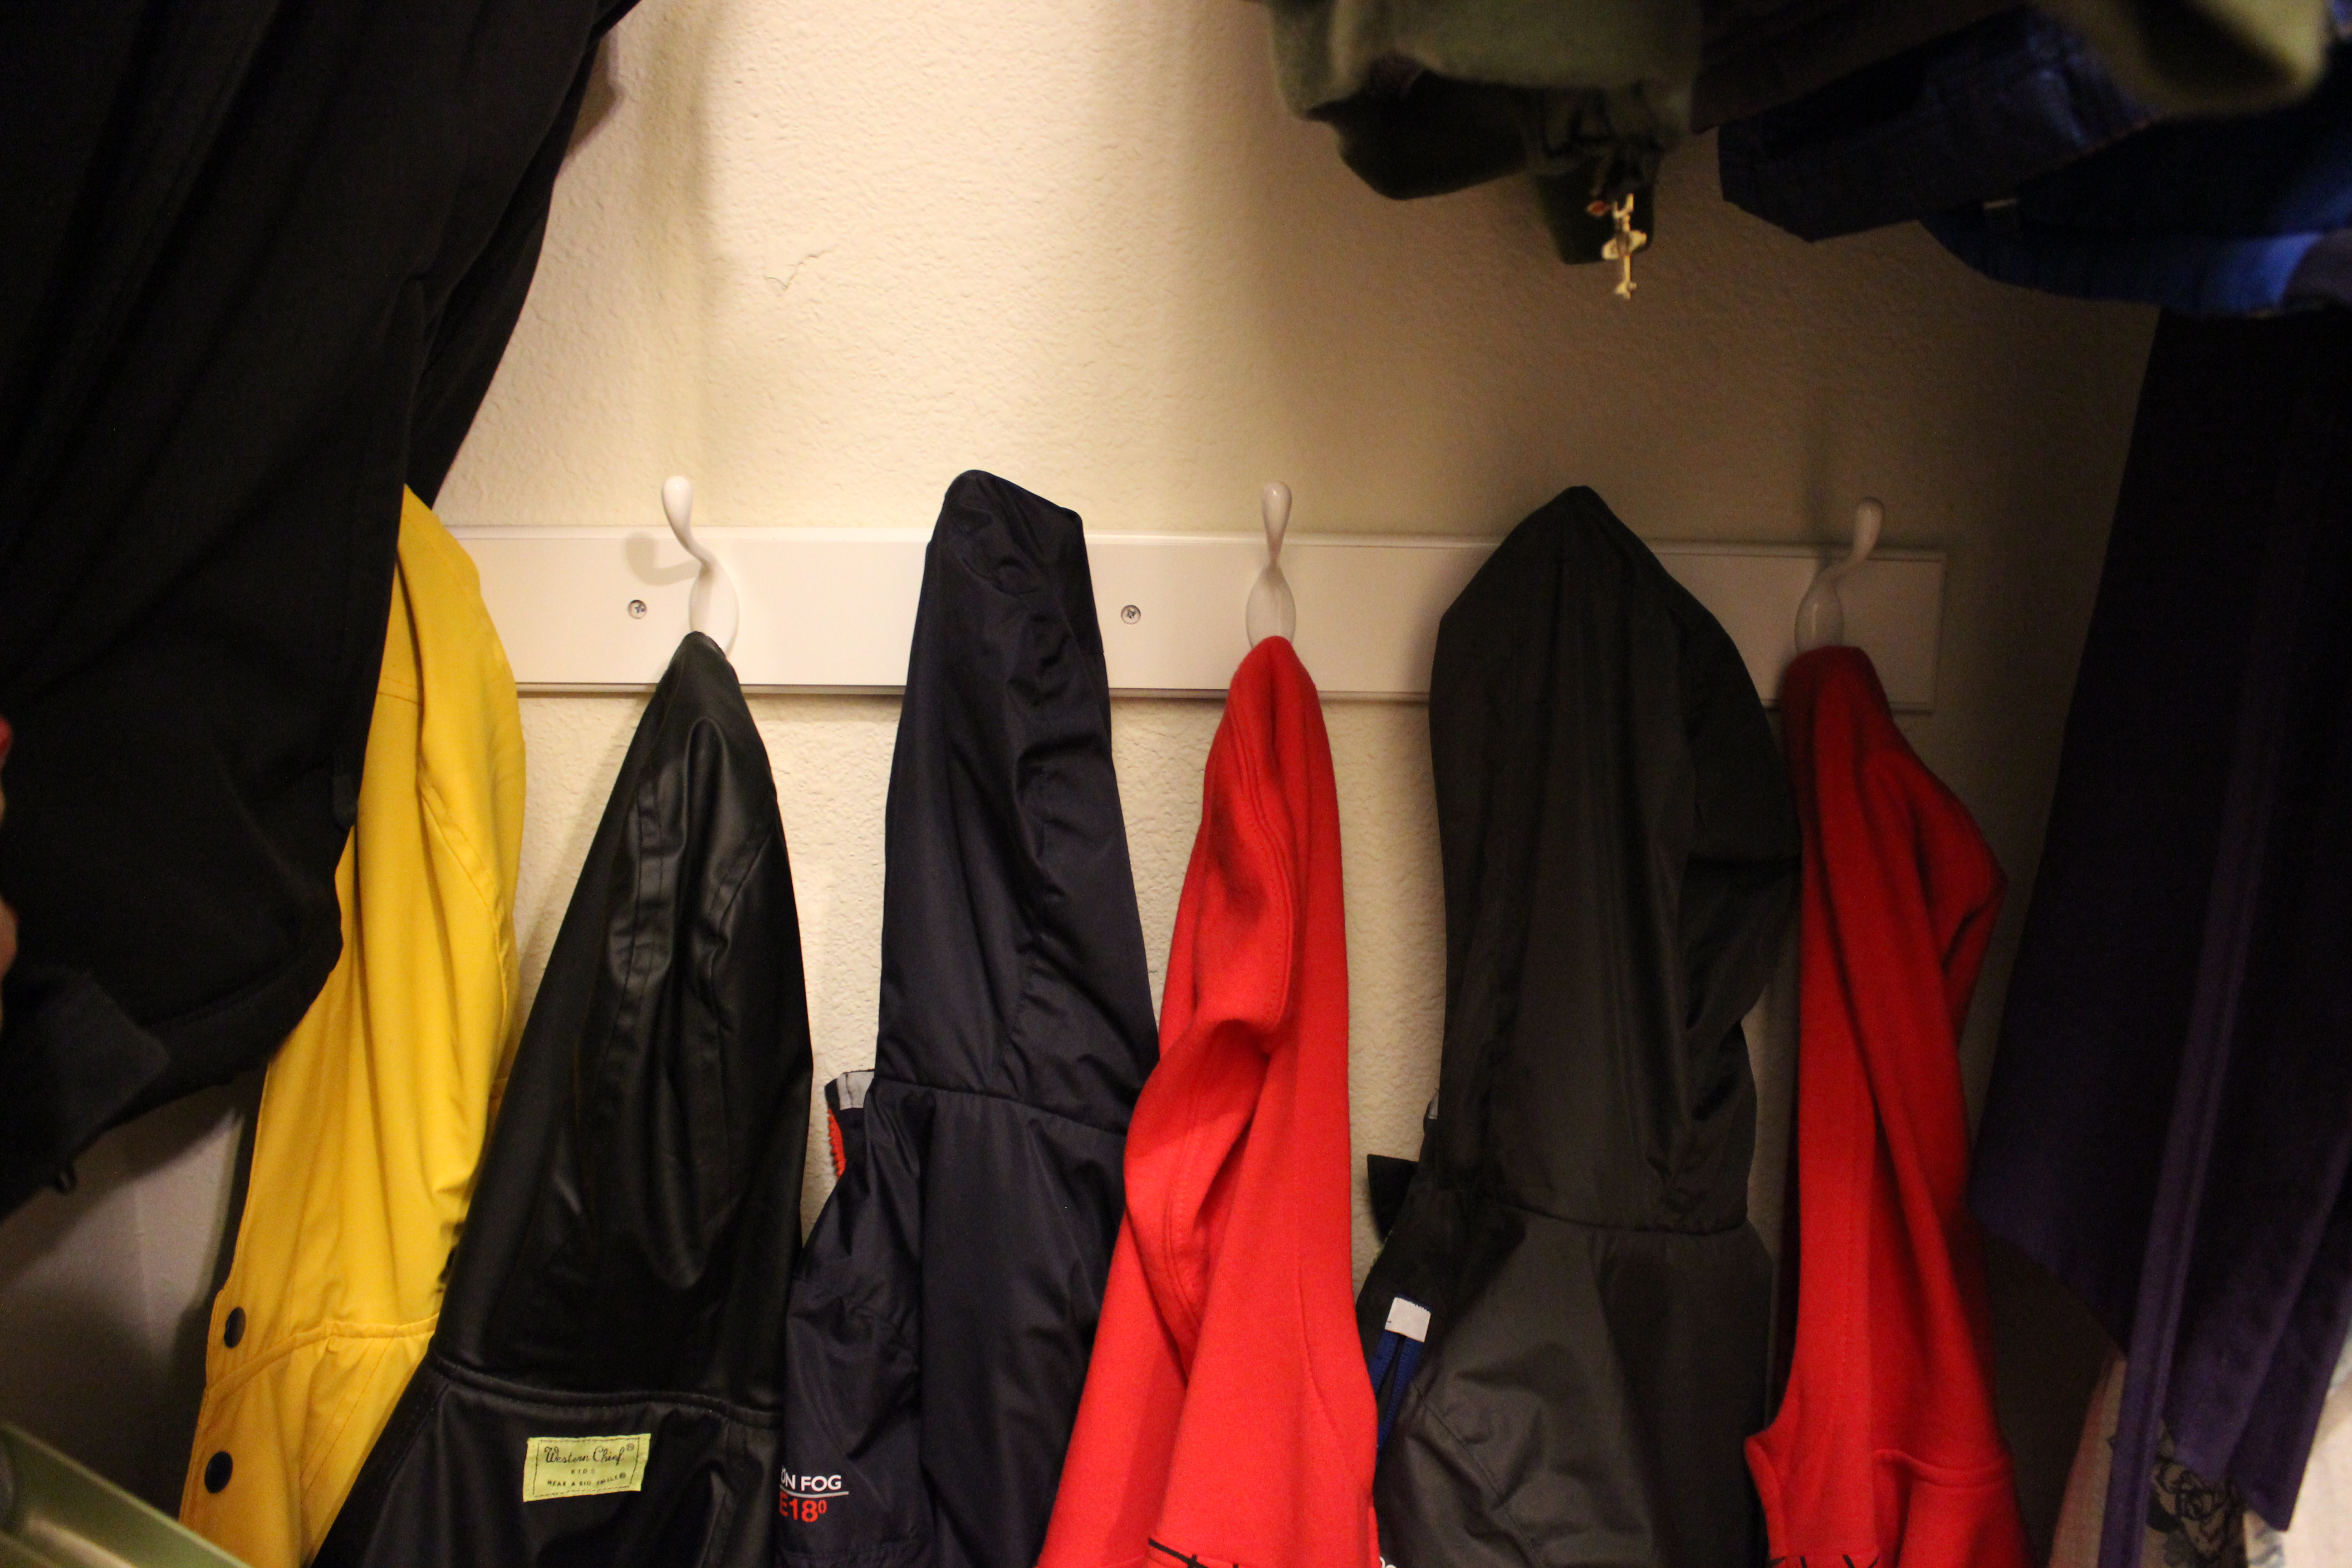 In The Back Of The Closet I Hung Up A 6 Hook Coat Hanger For My Sons To  Hang Their Own Coat Up. I Really Enjoy This, Because It Teaches  Responsibility And ...